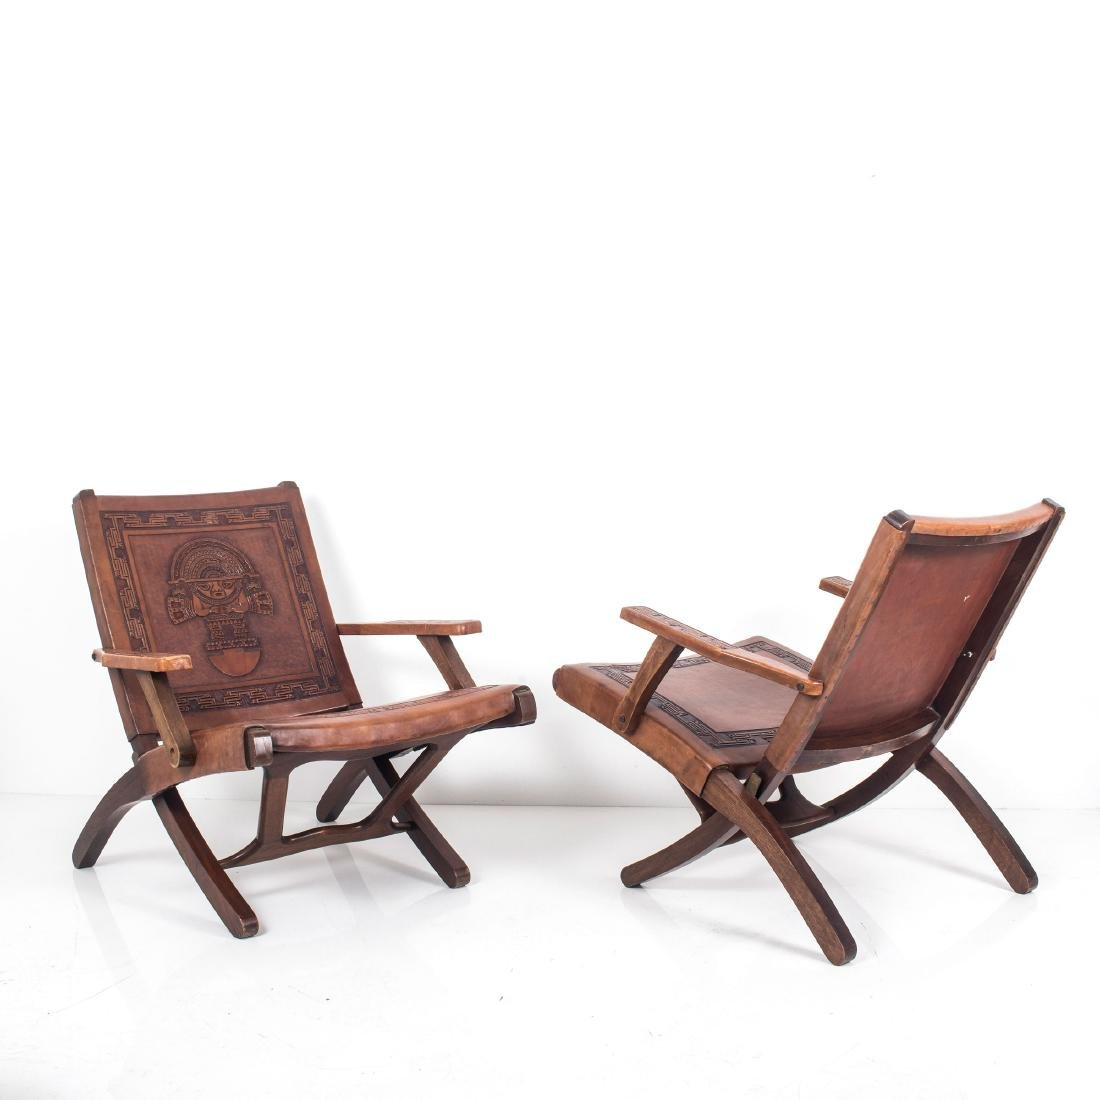 Two folding chairs, 1960s - 3